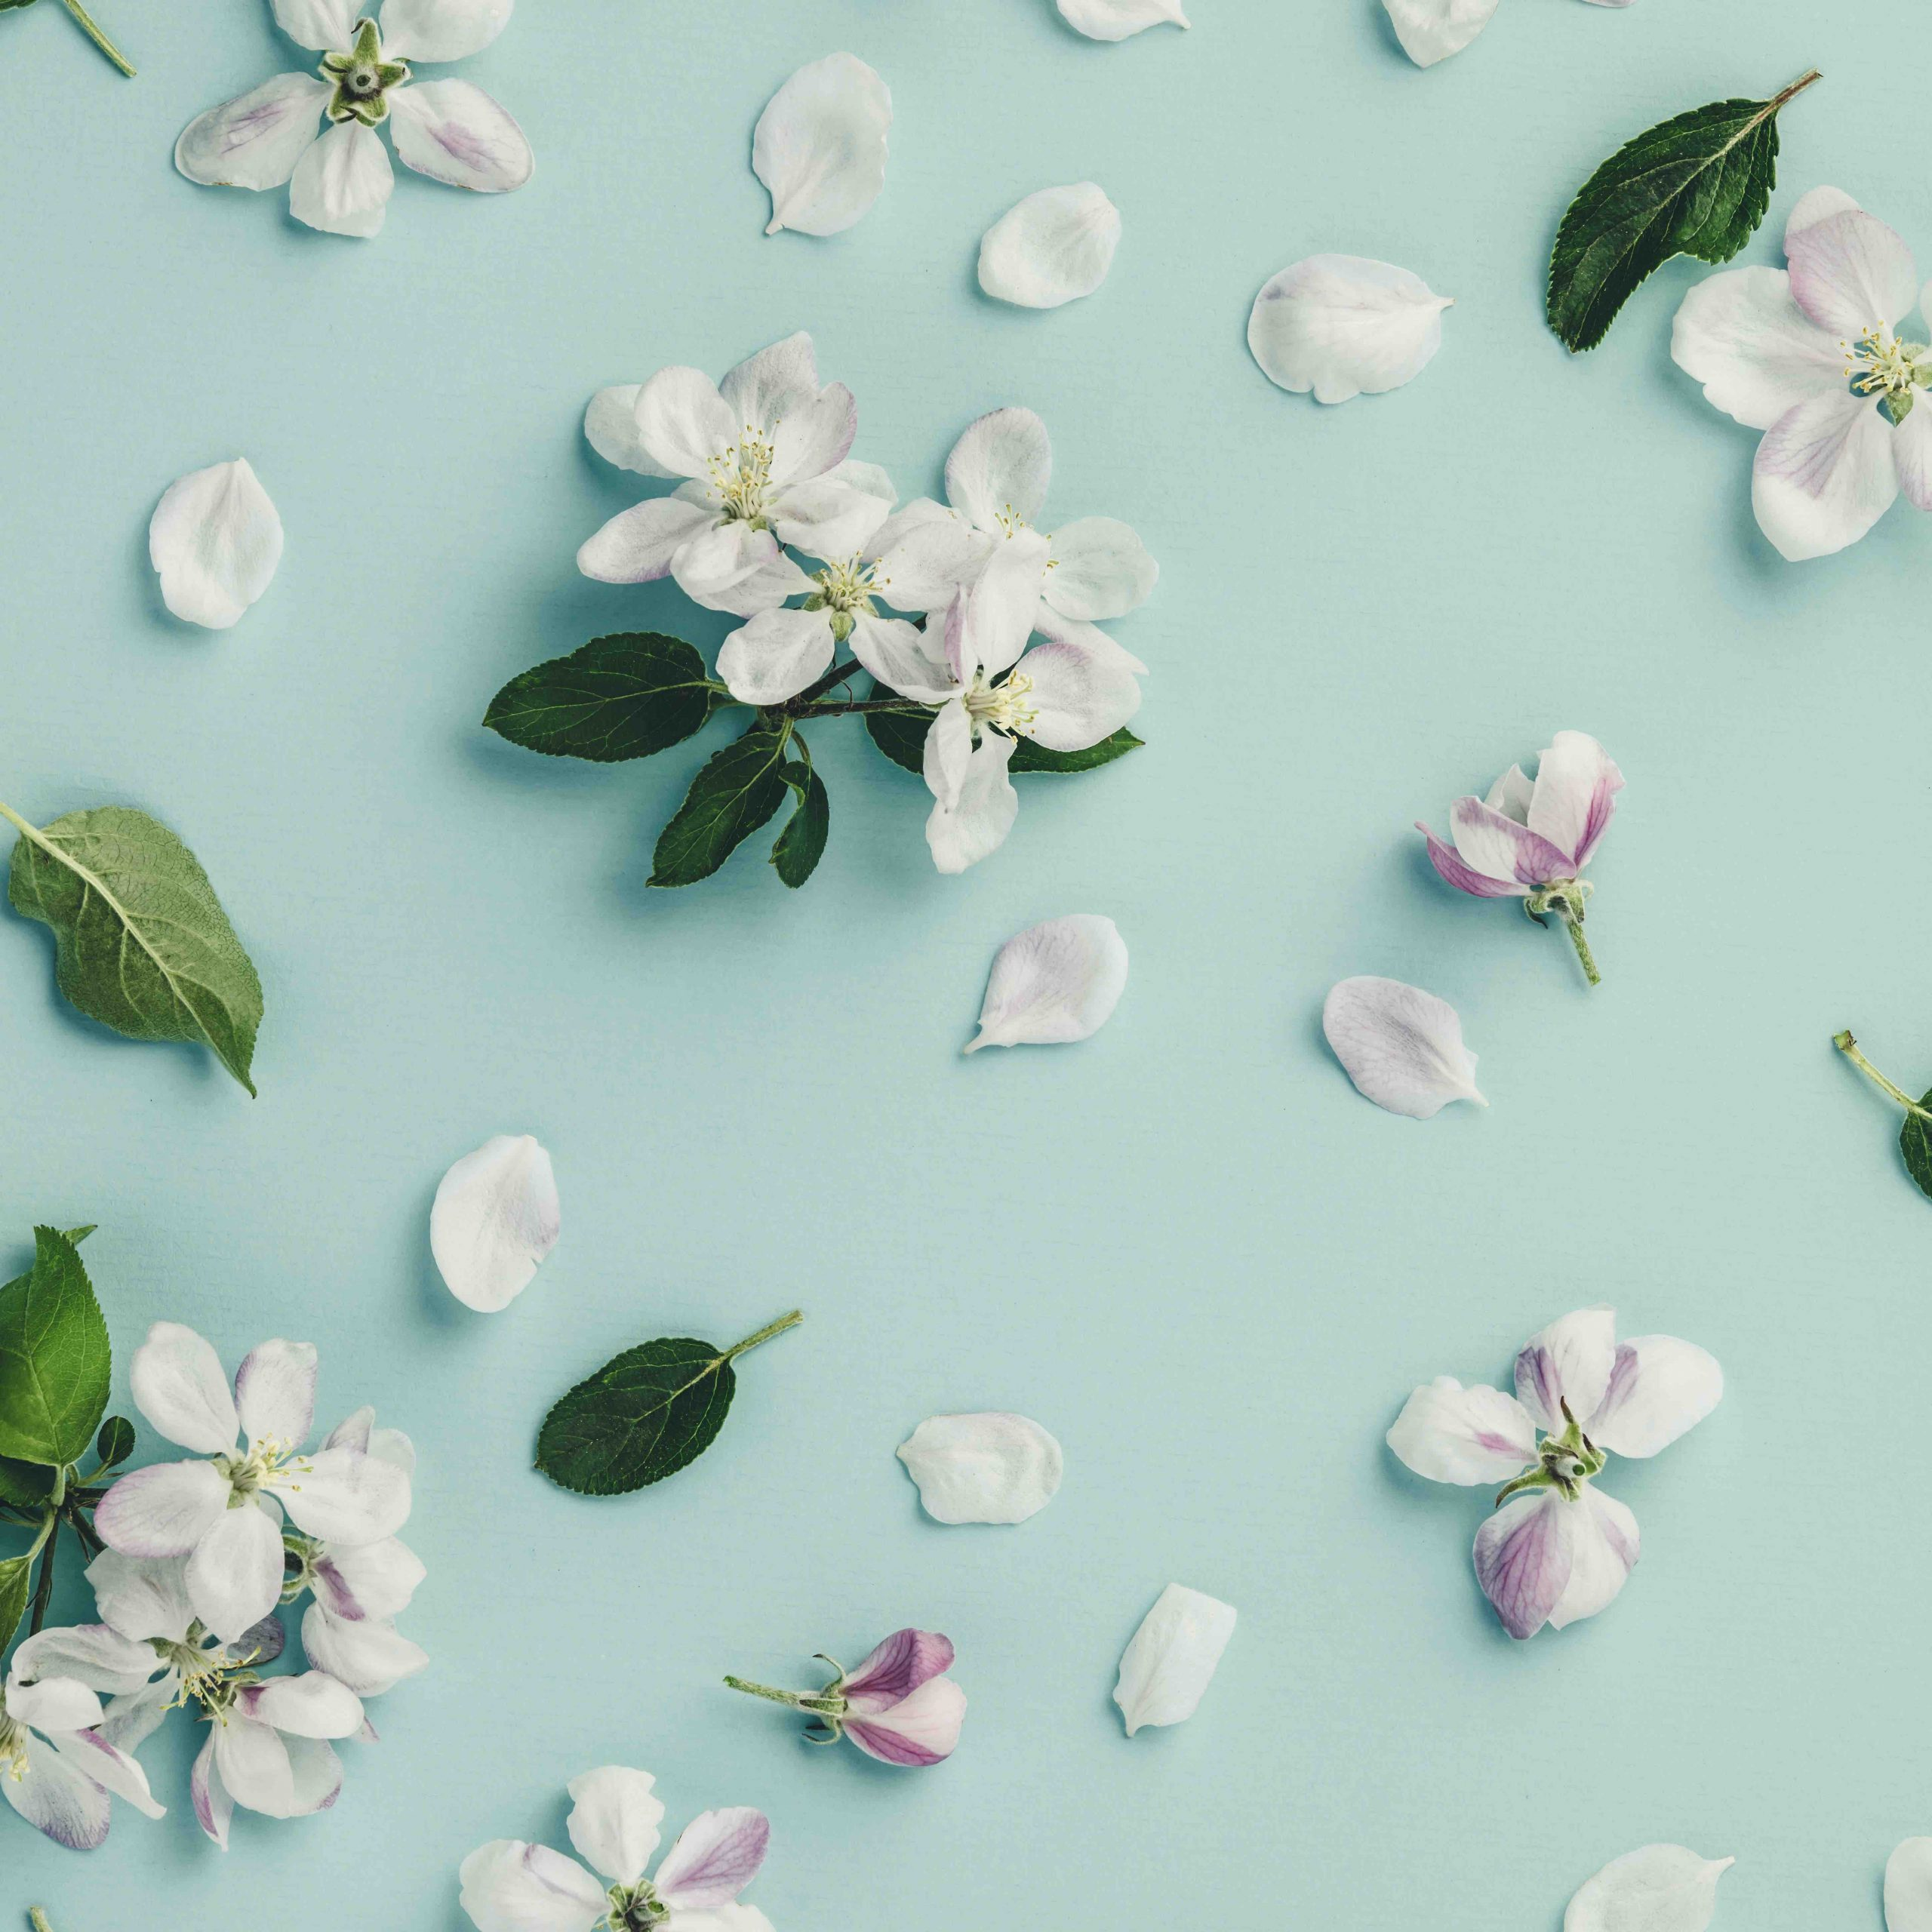 Flat-lay of white apple blossom flowers over light blue background, top view, flat lay